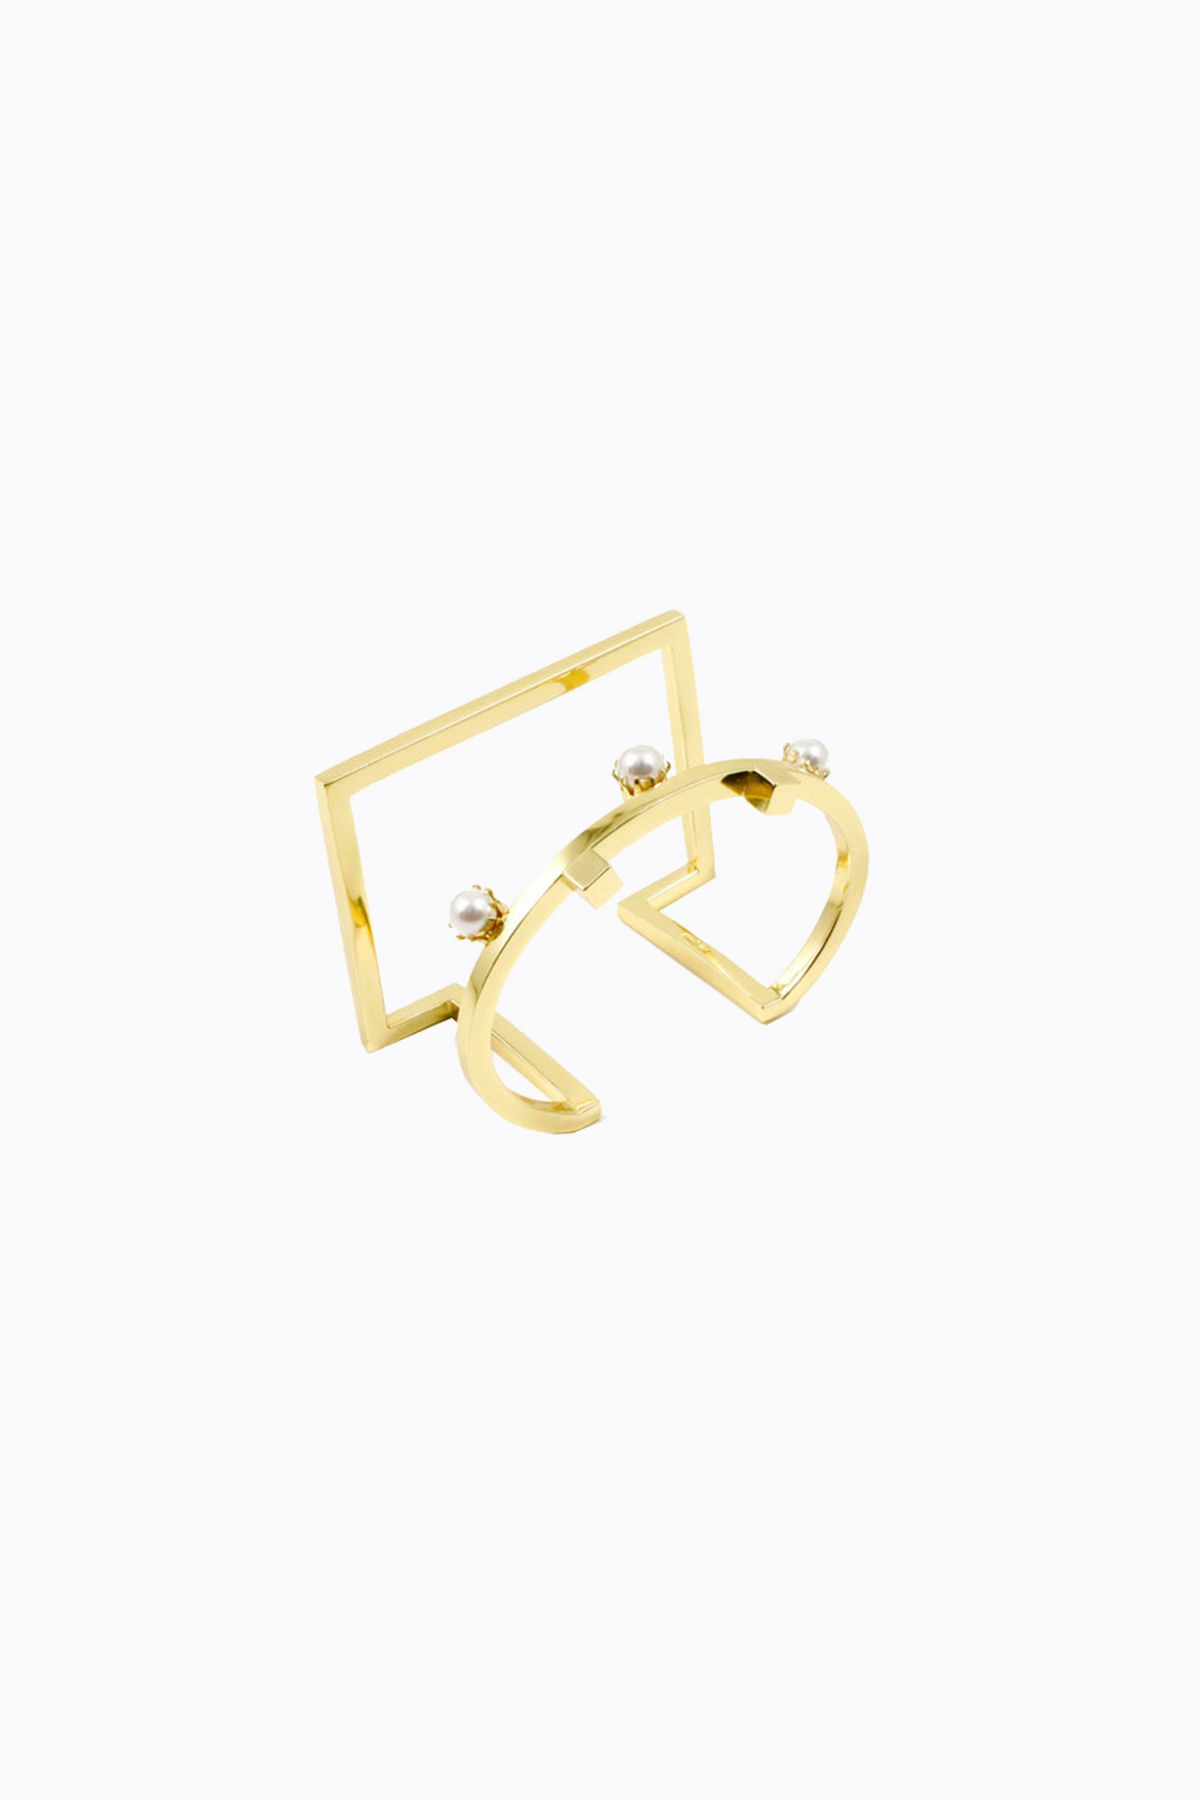 Shop Jewelry Fall Fashion 2015 The Complete Guide